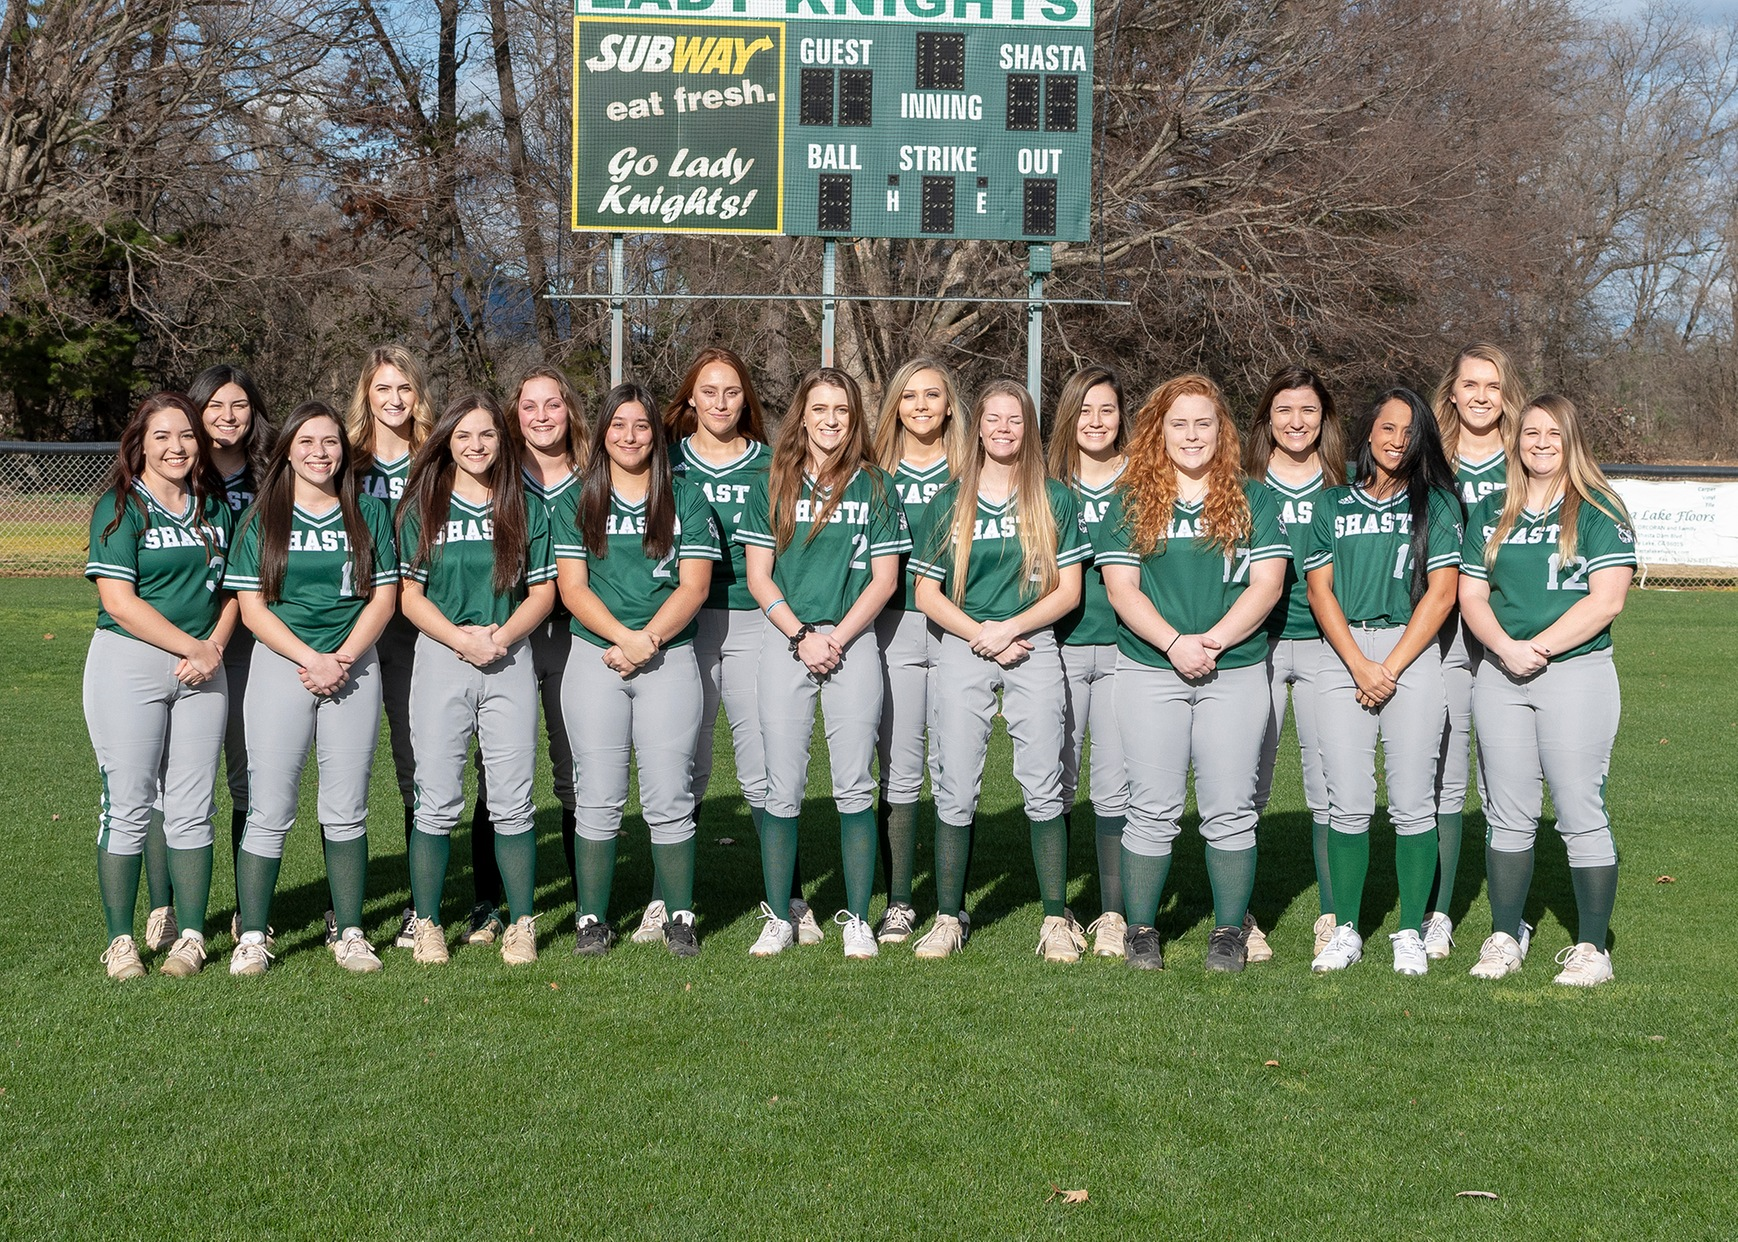 SHASTA COLLEGE SWEPT FOR FIRST TIME THIS SEASON